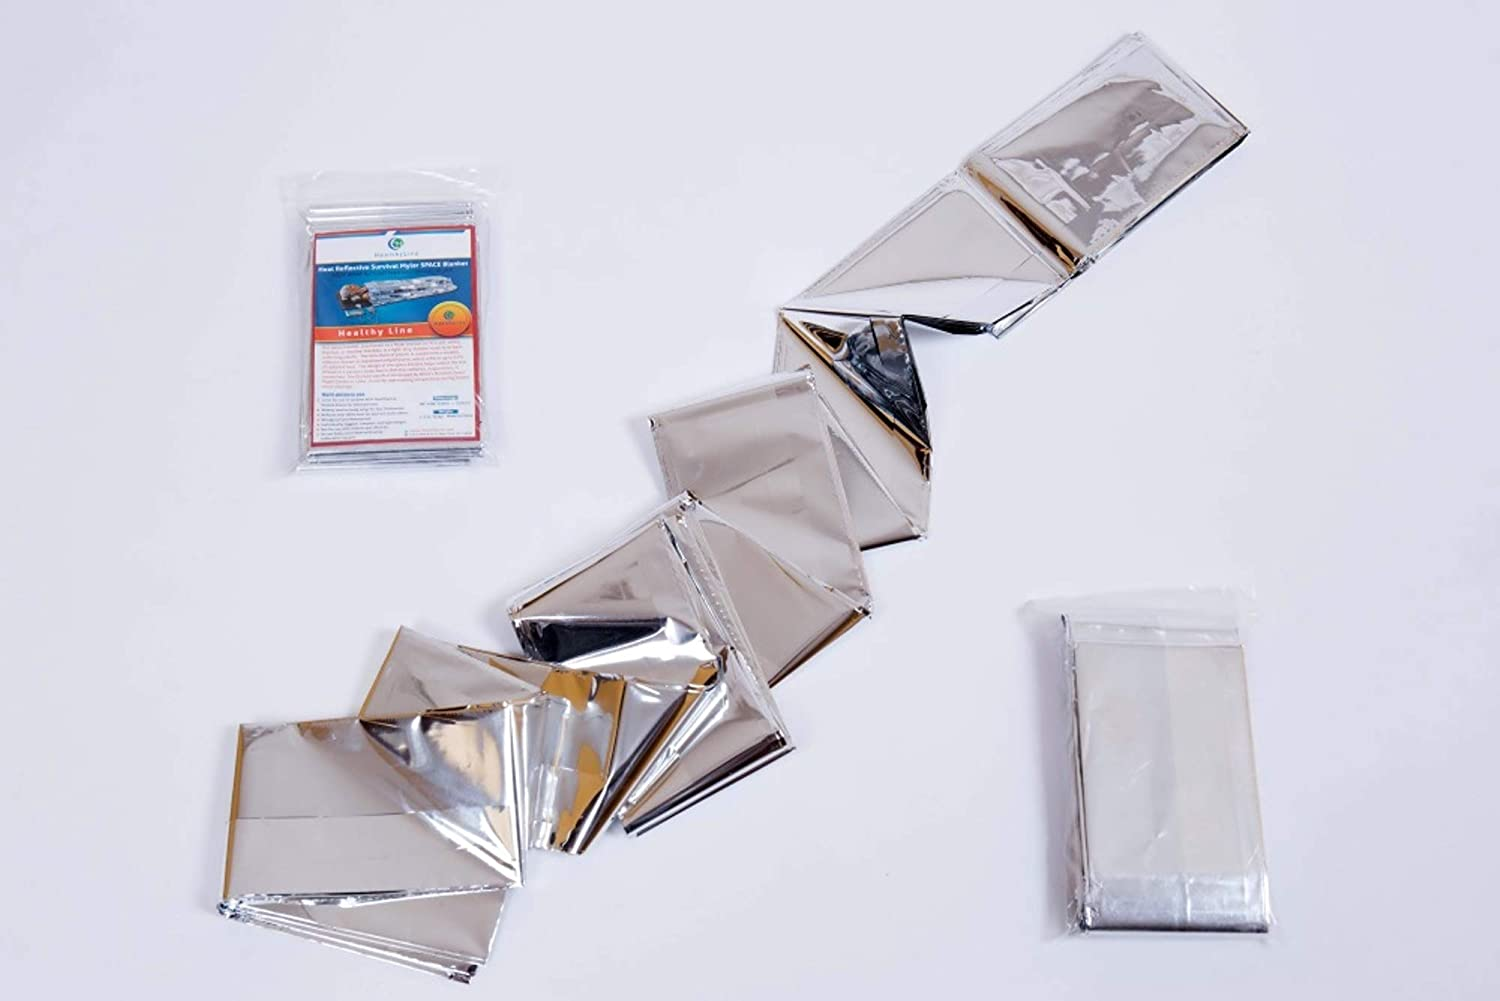 Pack of 50 pcs Retains up to 97/% of Body Heat Thermal Foil Sauna Blanket 64in x 84in Survival Mylar Blankets Far Infrared Therapy HealthyLine - for Detox /& Weight Loss